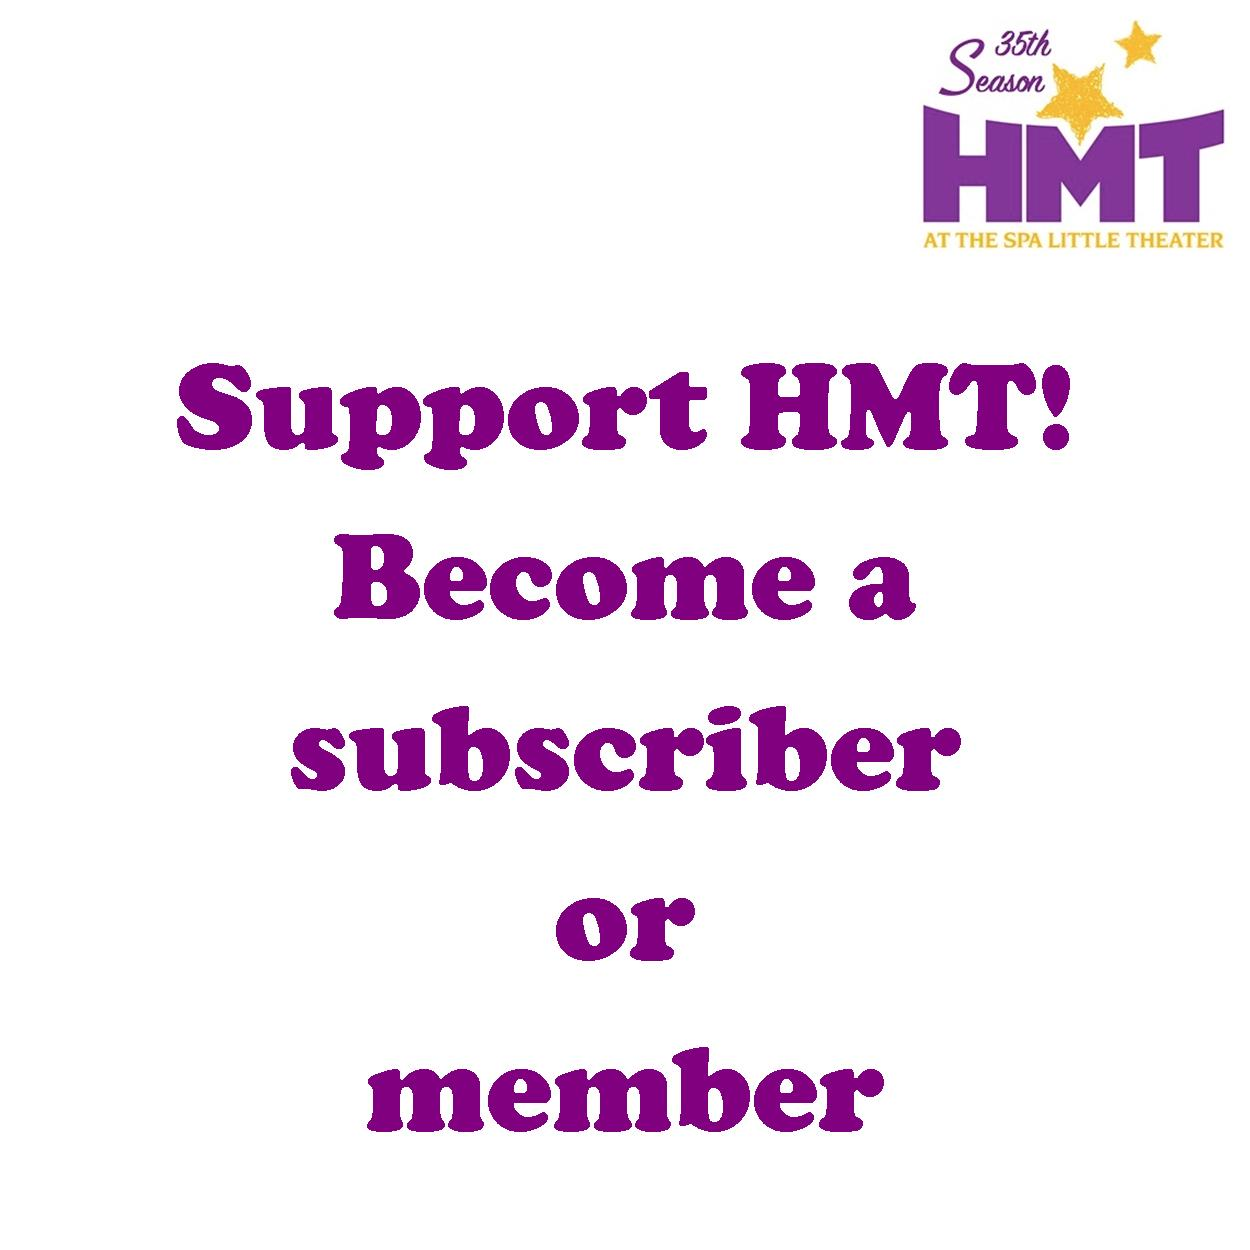 Become an HMT Member